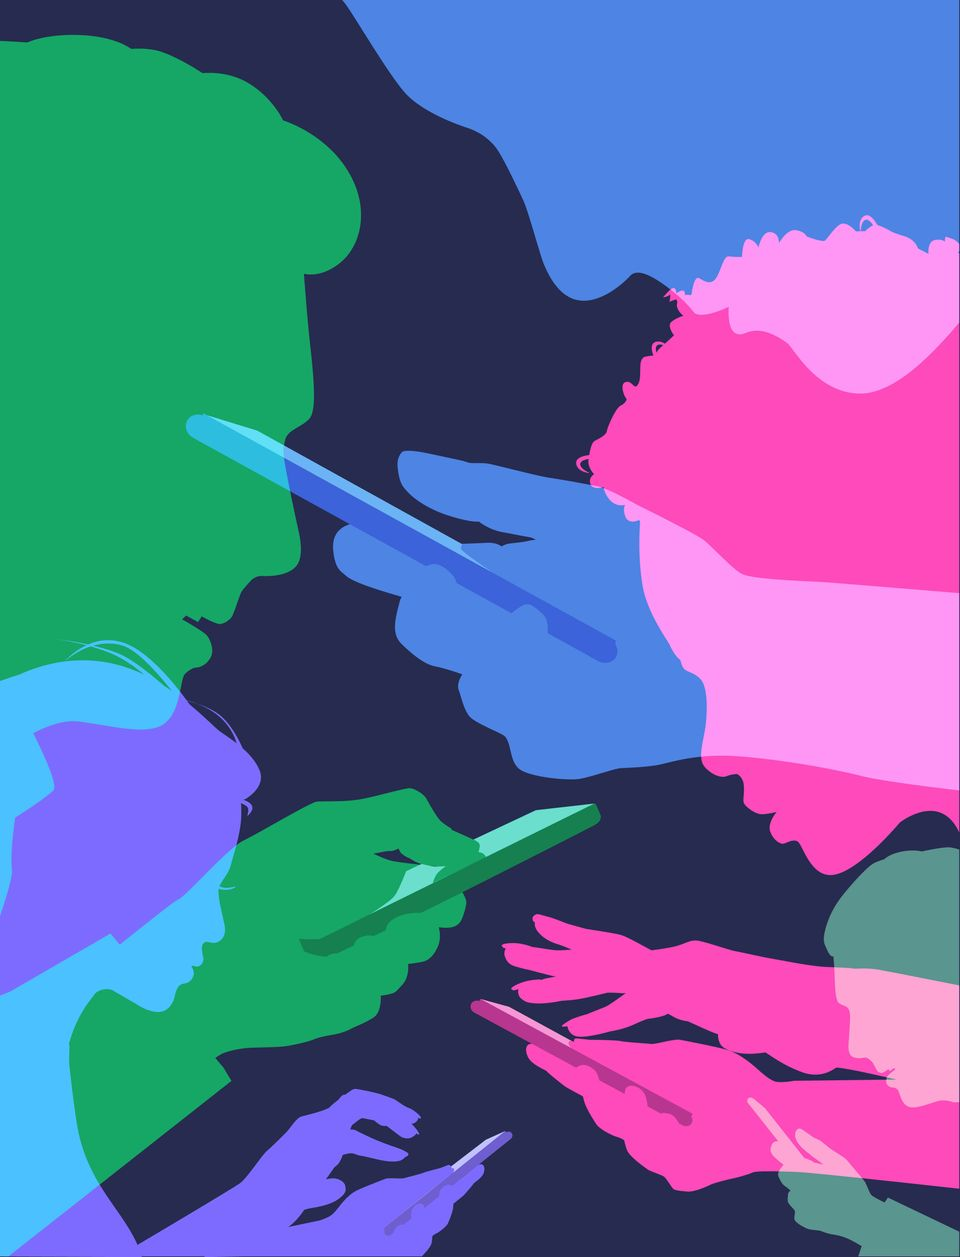 Colourful overlapping silhouettes of mobile phone users